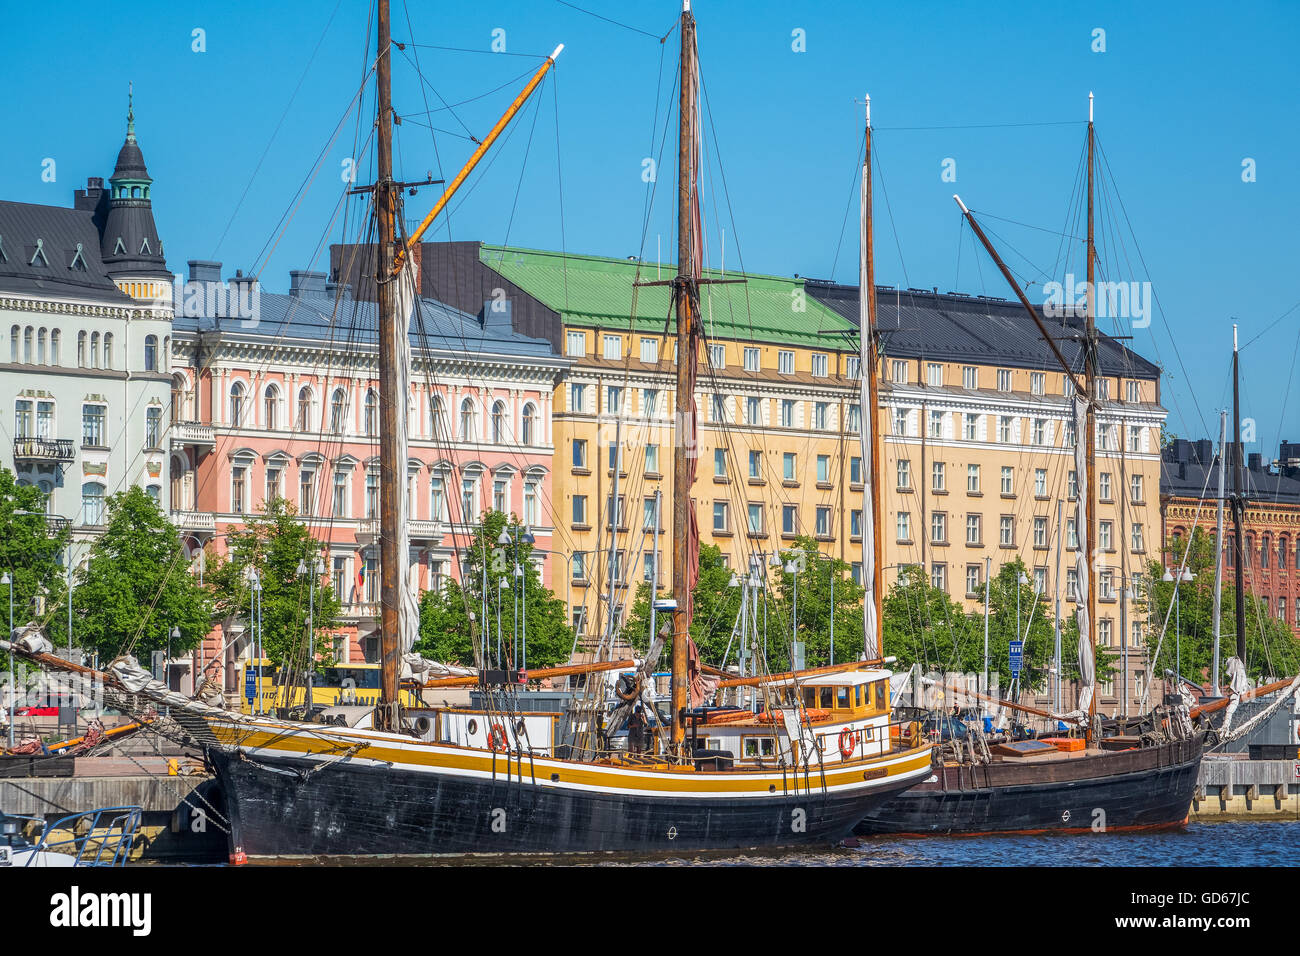 Sailing Ships In The Harbour Helsinki Finland - Stock Image